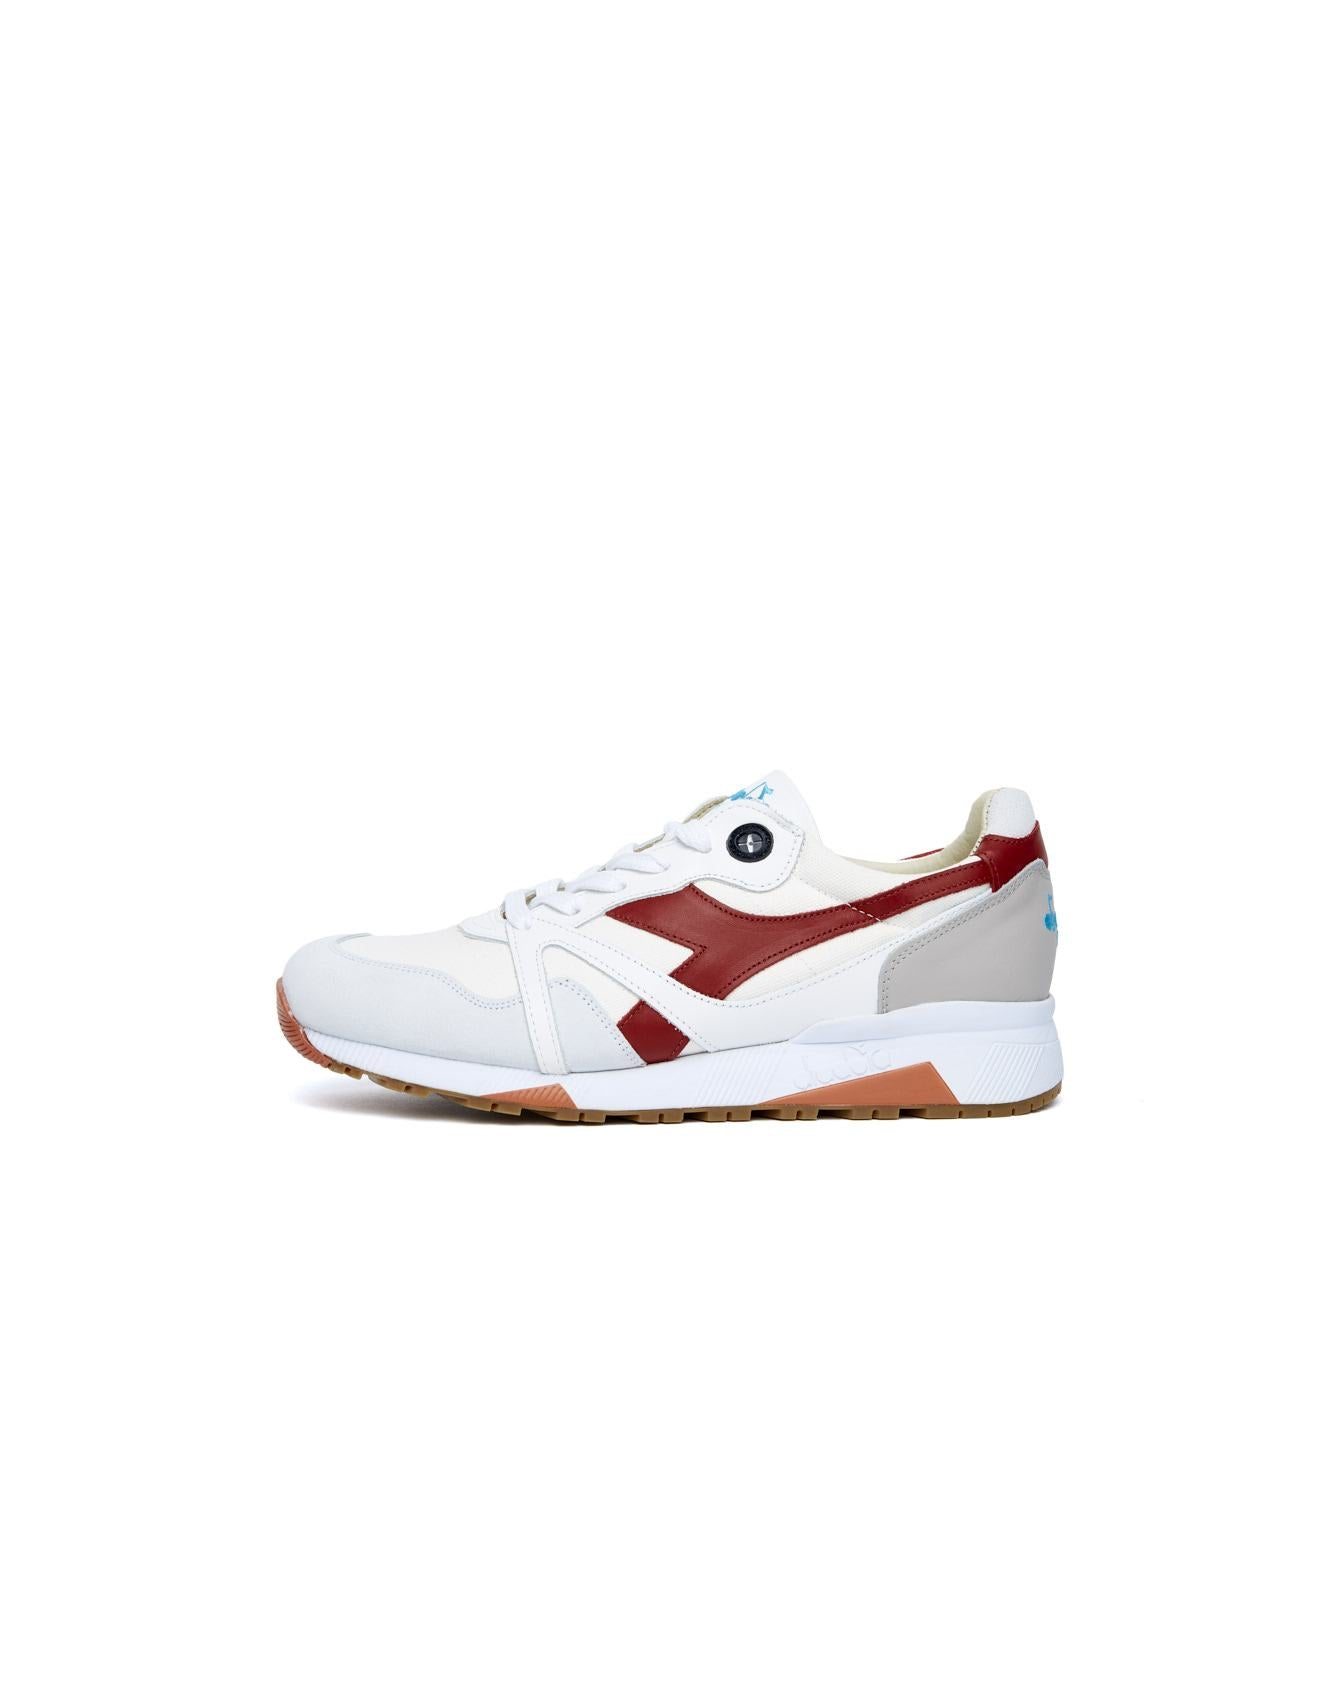 best service 584b6 b7f40 Diadora white nylon and leather sneakers for men on Bellerose official  webshop